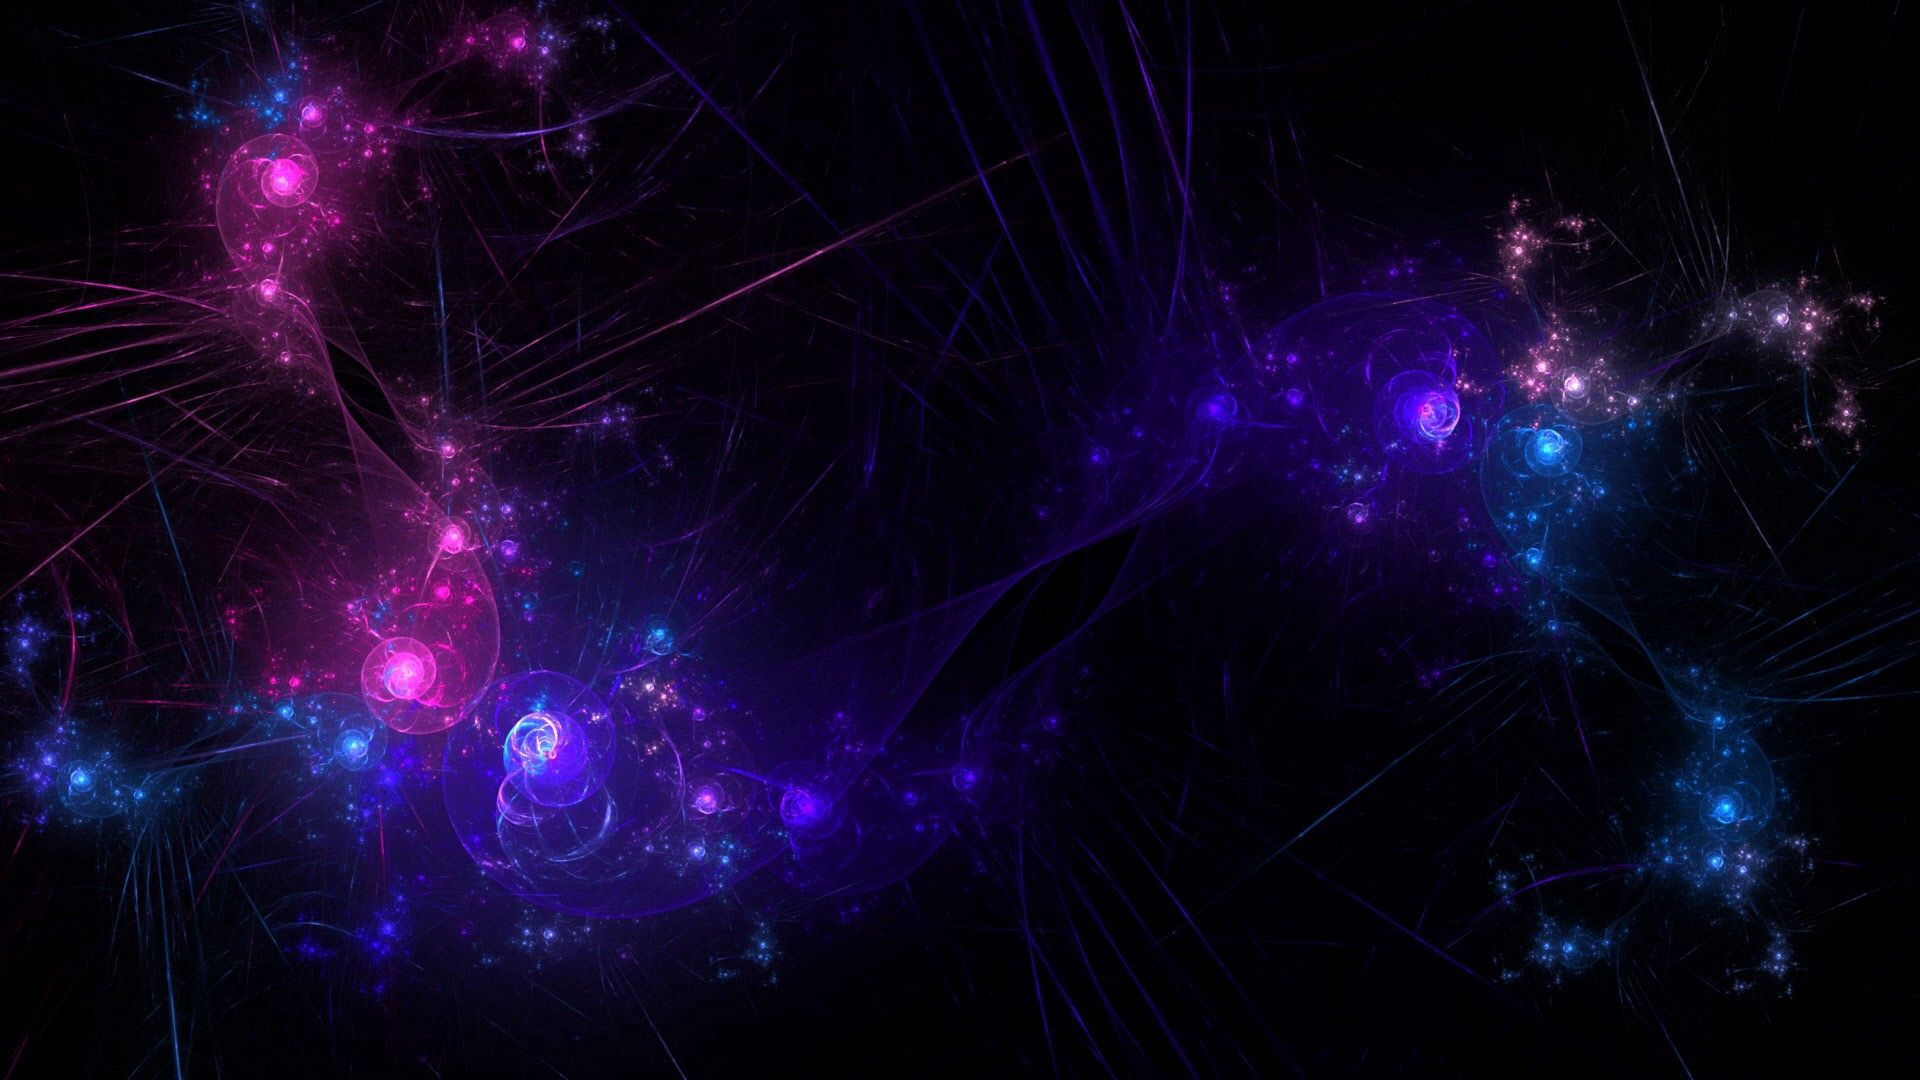 128556 download wallpaper Abstract, Background, Dark, Stains, Spots, Lines screensavers and pictures for free